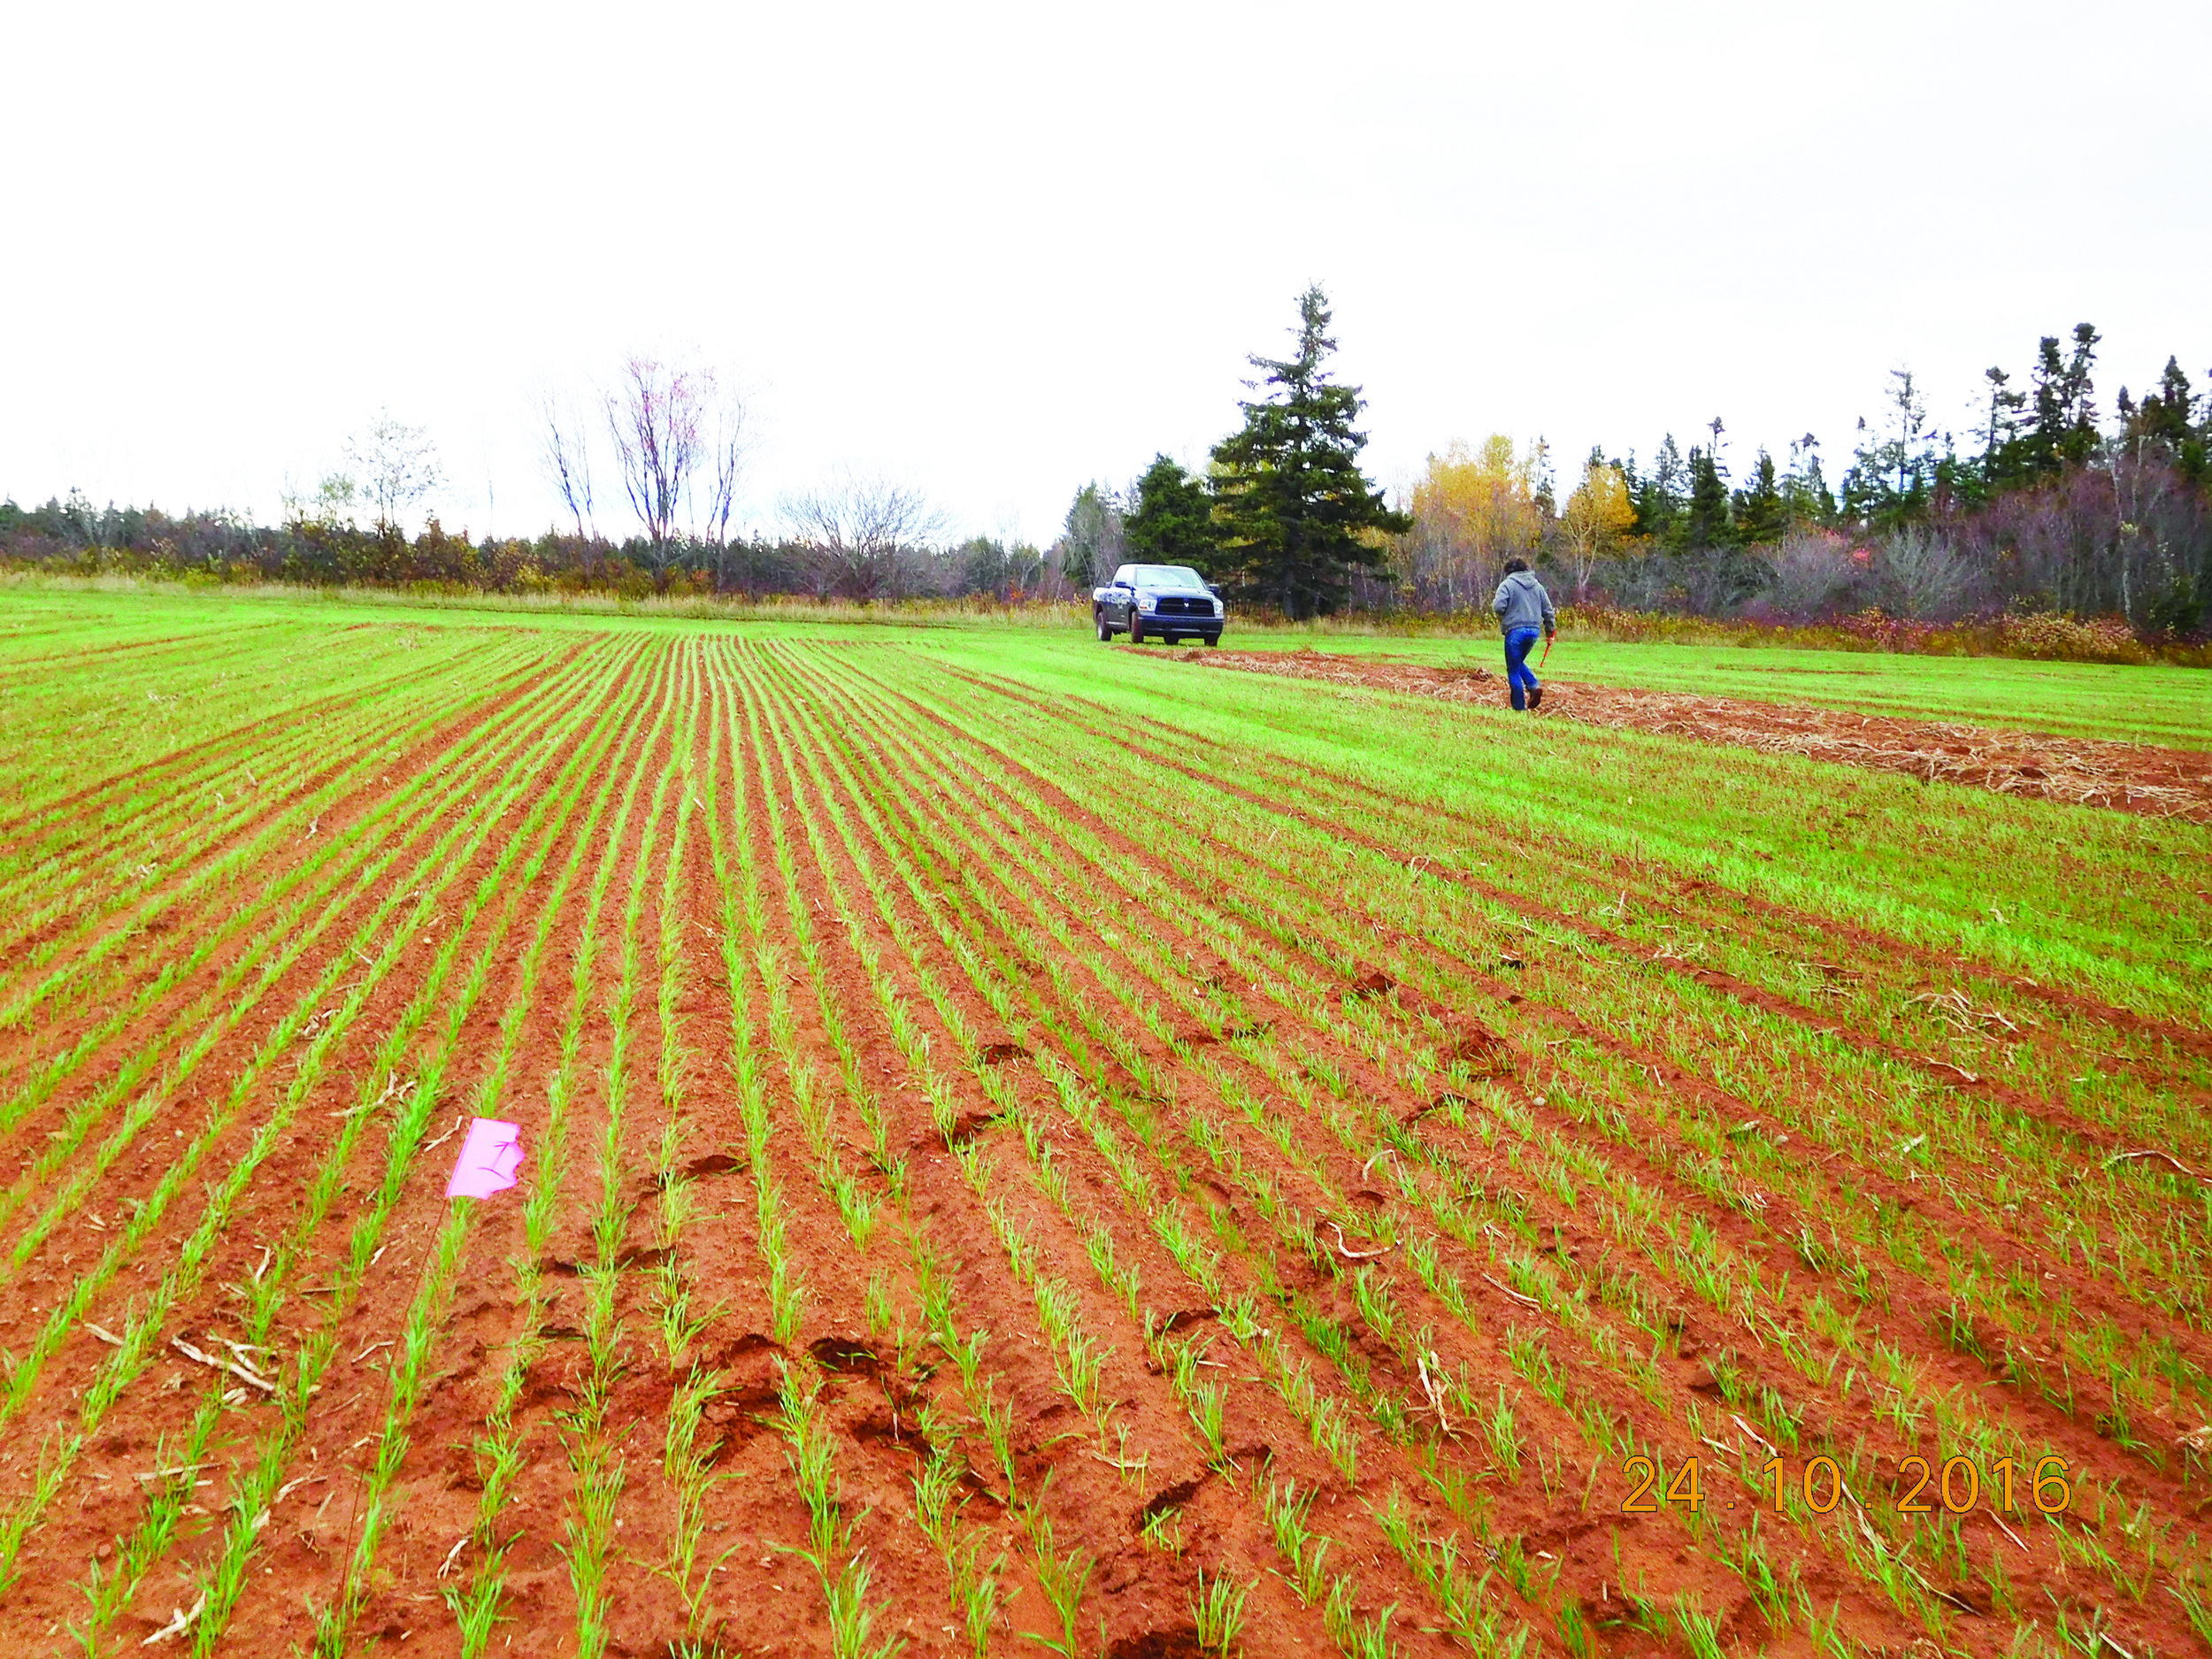 Winter wheat planted in a field after the potato harvest on the Ramsay farm in the Kensington area of Prince Edward Island shown on Oct. 24, 2016. Agriculture and Agri-Food Canada scientists collaborate with the Ramsays on research. Planting winter cereals following the potato harvest offers multiple benefits, such as protecting soil against erosion and scavenging residual nitrate. Winter cereals are also a potential source of revenue for farmers.